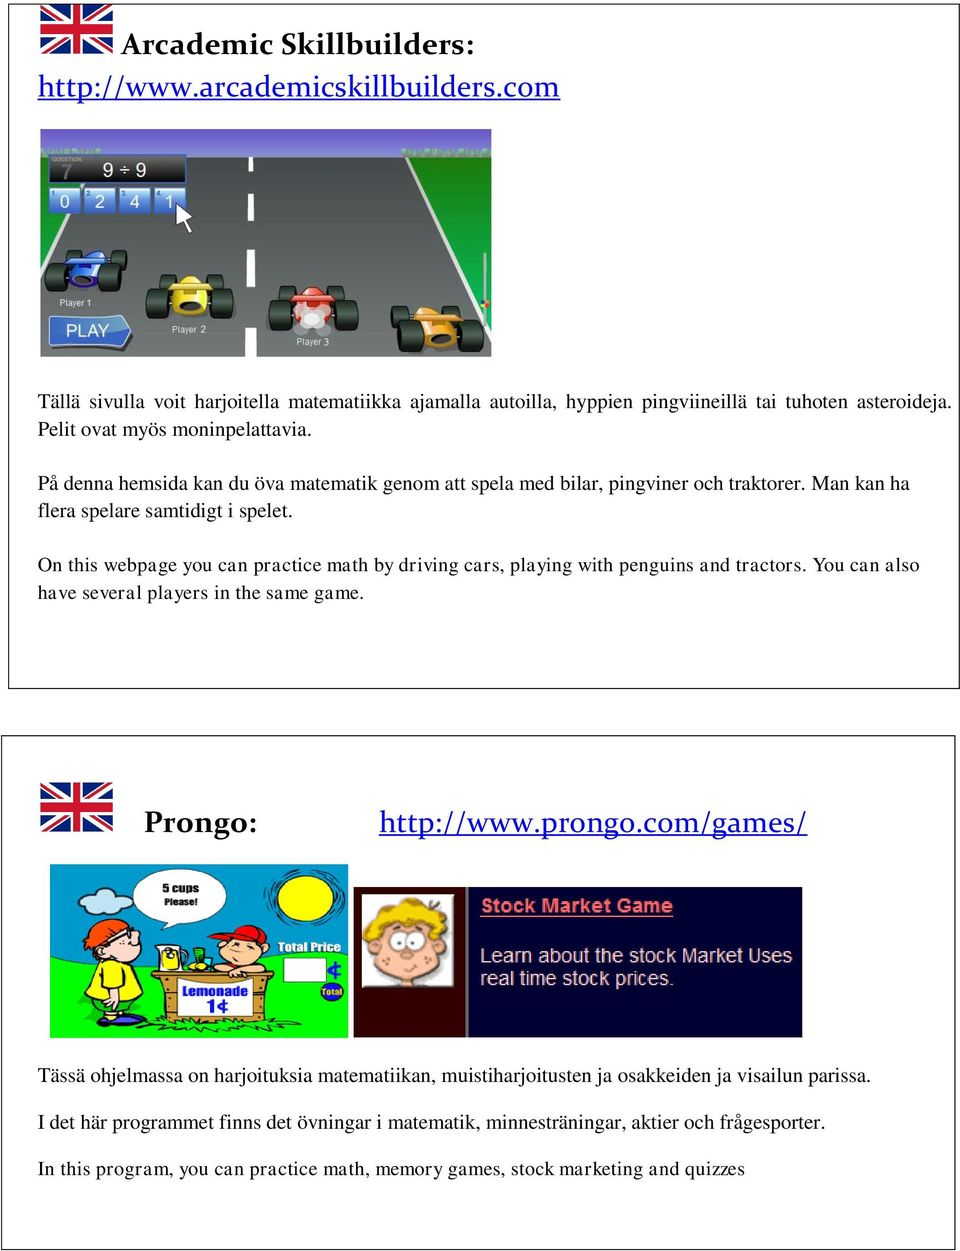 On this webpage you can practice math by driving cars, playing with penguins and tractors. You can also have several players in the same game. Prongo: http://www.prongo.